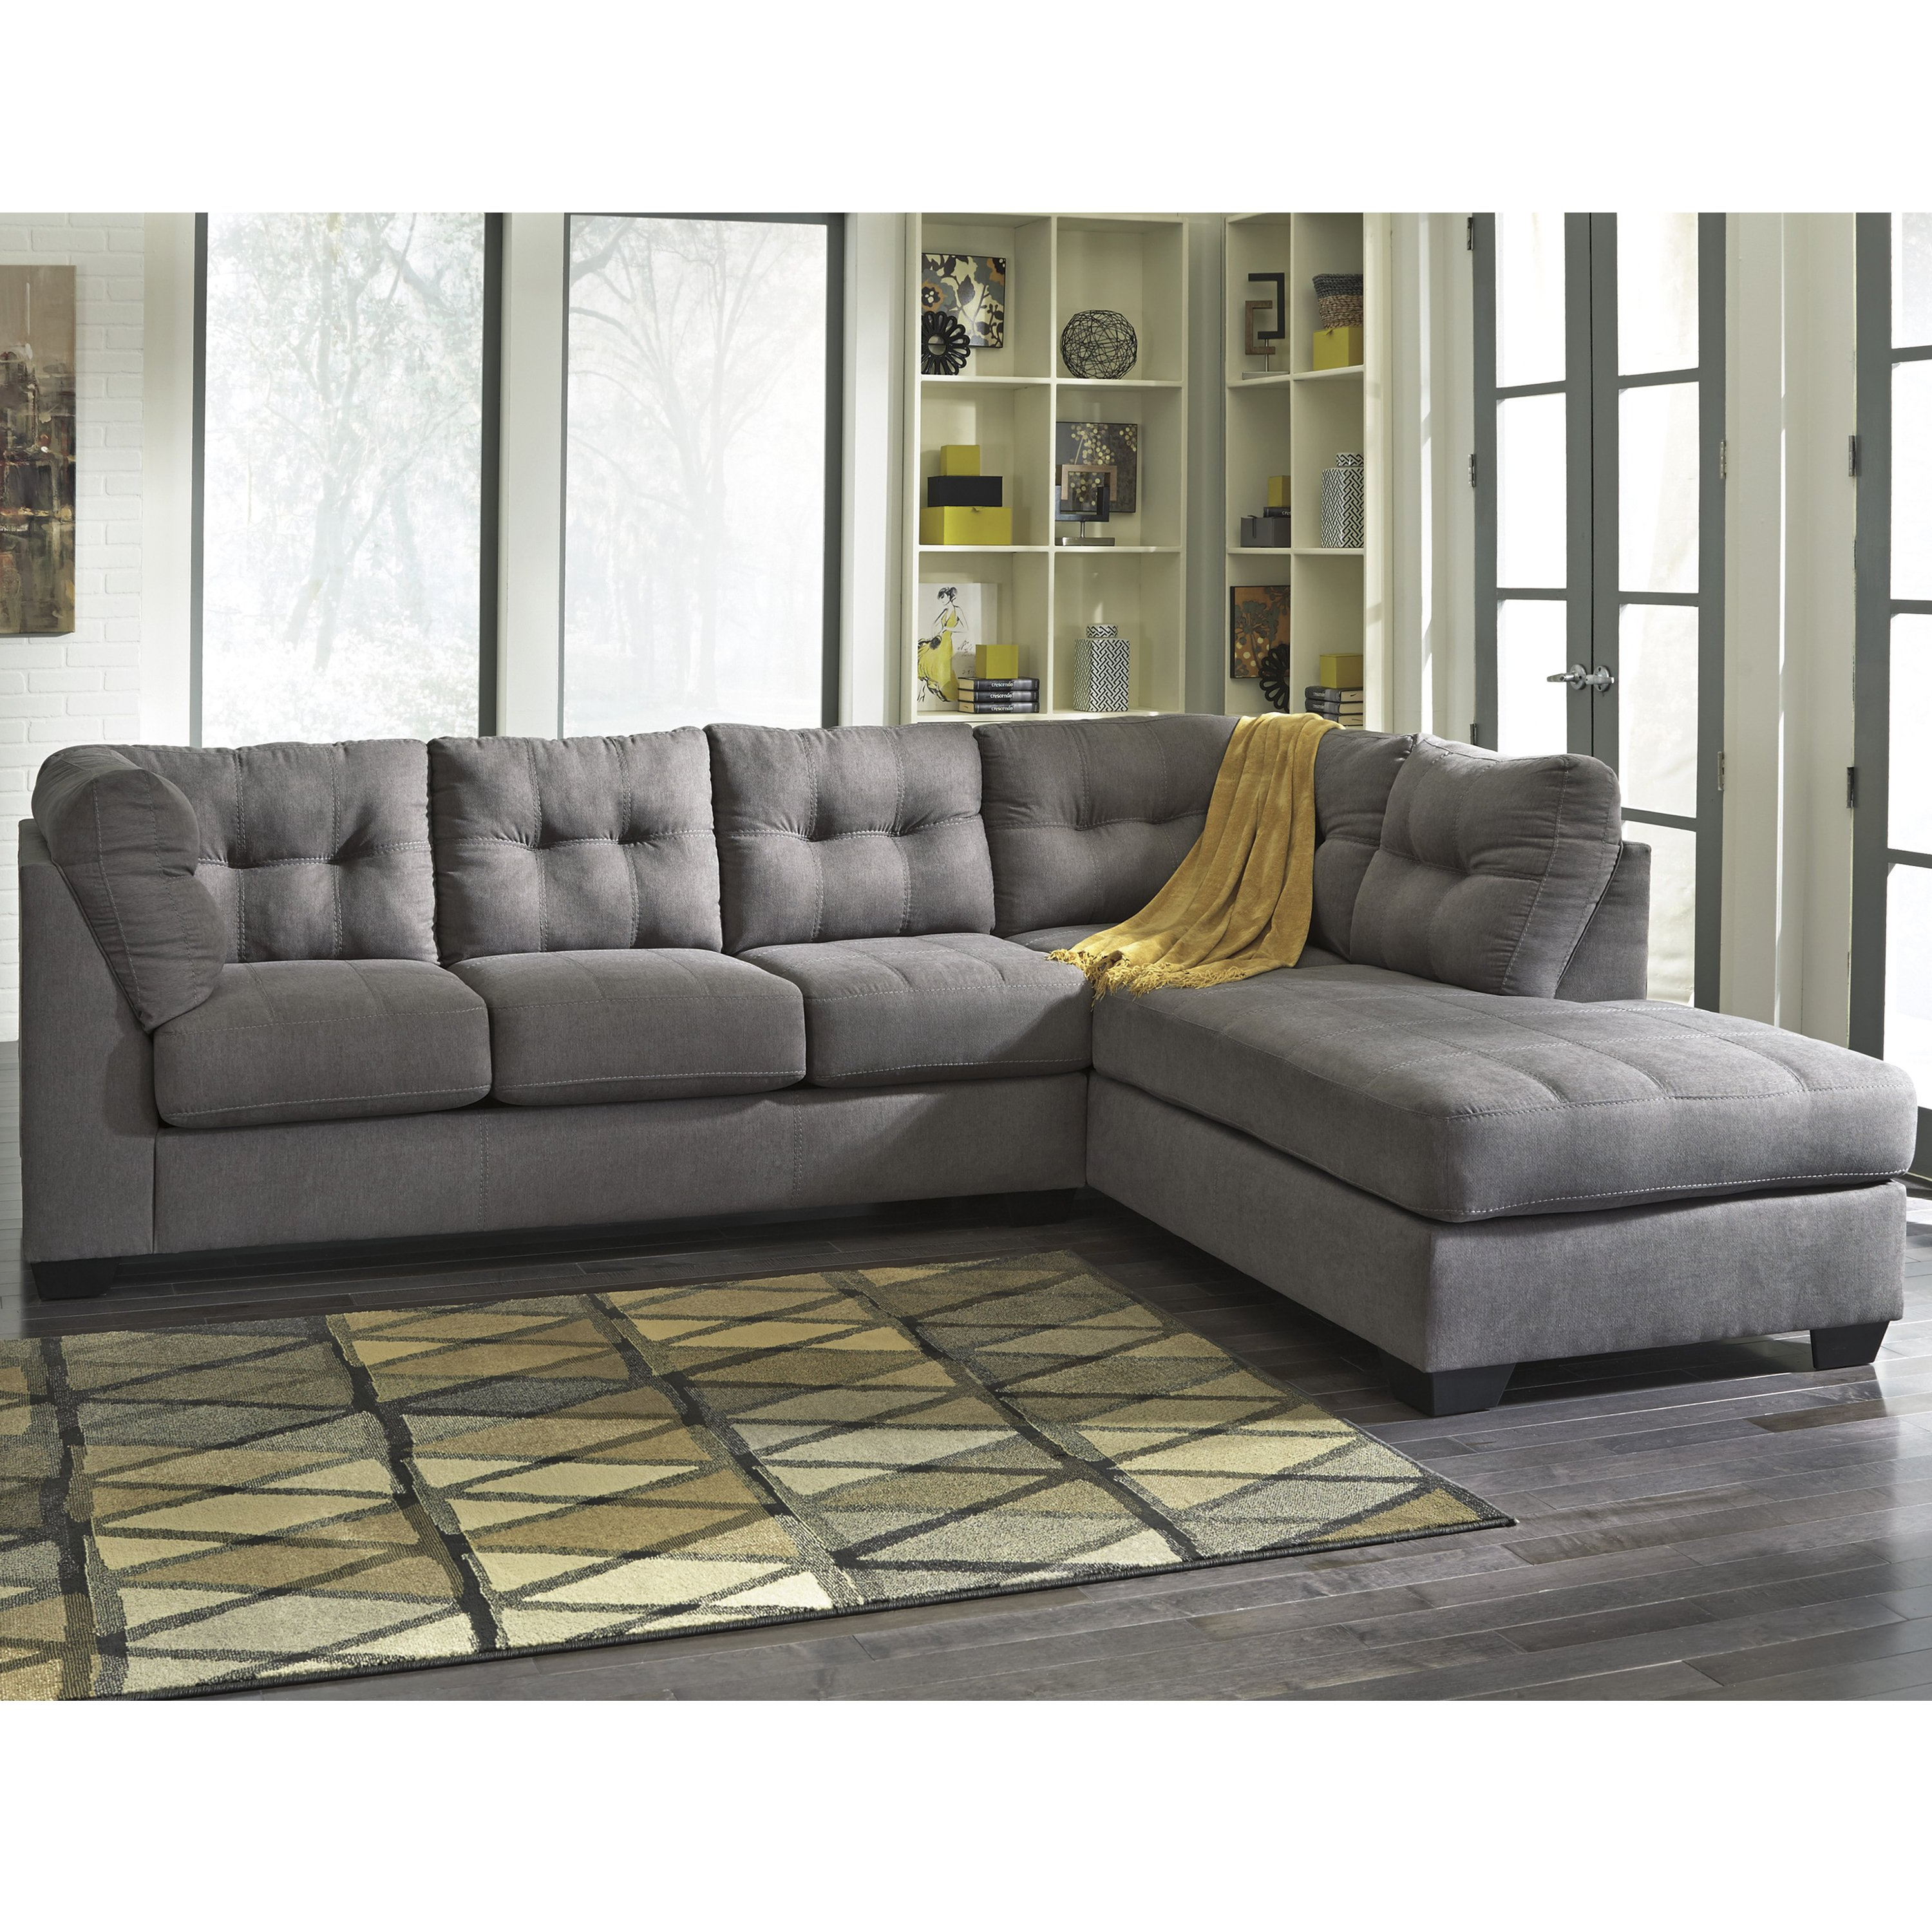 Most Recent Harper Foam 3 Piece Sectionals With Raf Chaise Within Shop Clay Alder Home Wells Microfiber Sectional With Left Side (View 18 of 20)